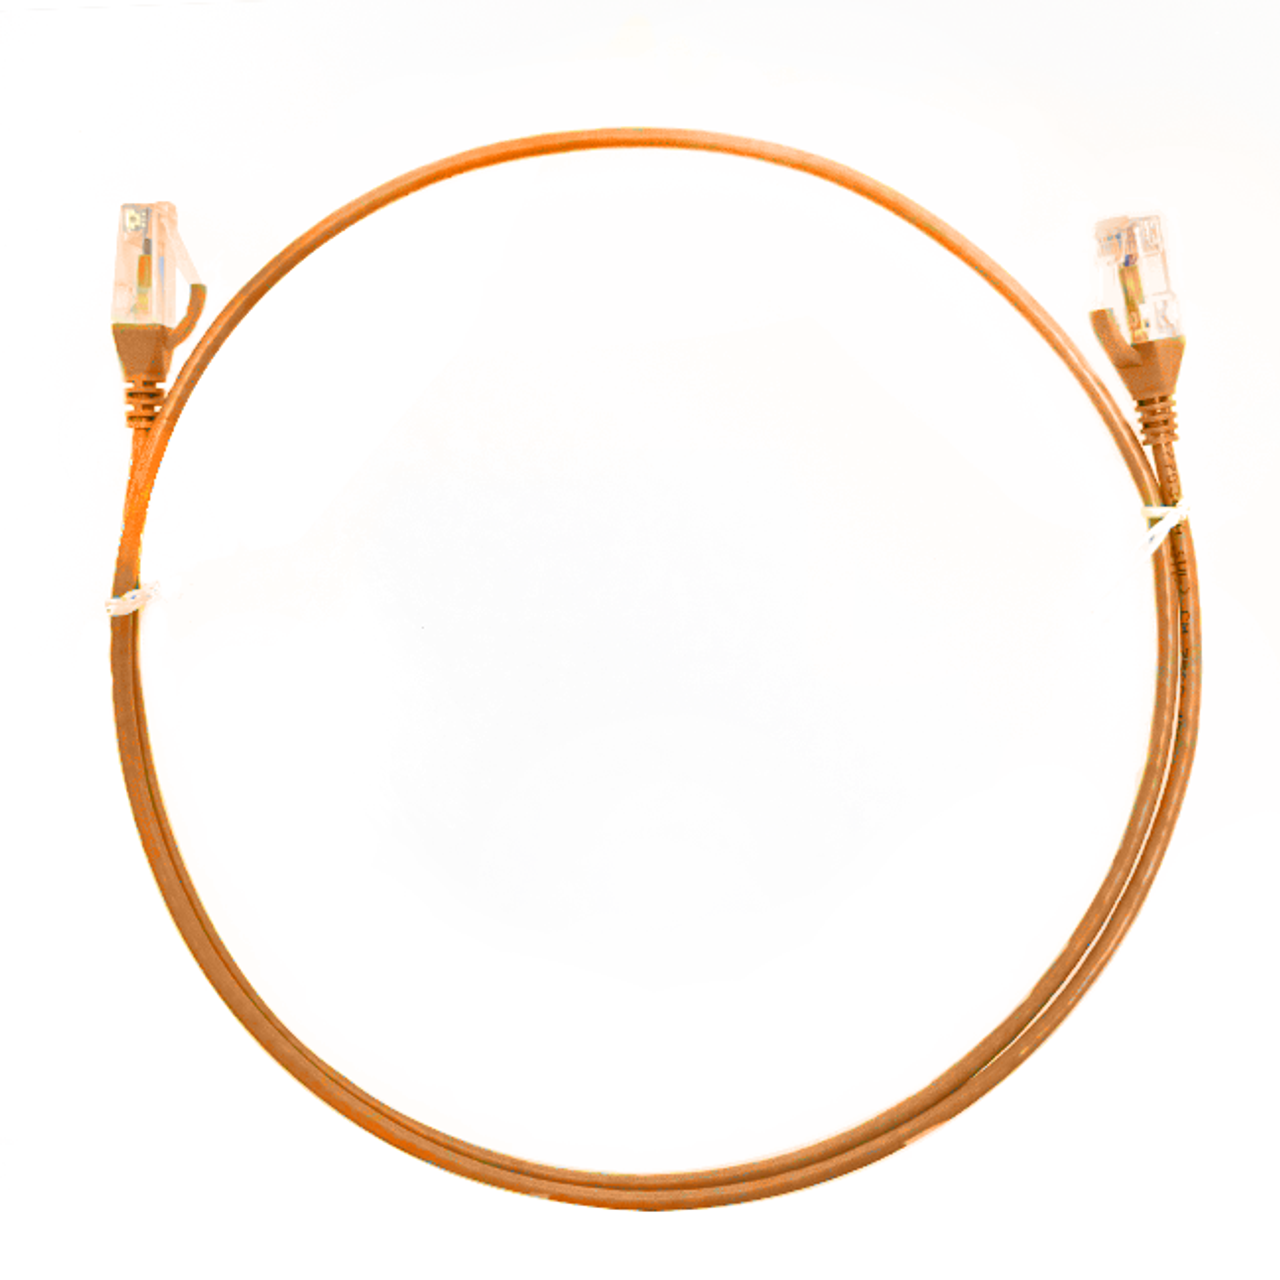 Image for 1.5m Cat 6 Ultra Thin LSZH Ethernet Network Cables: Orange CX Computer Superstore